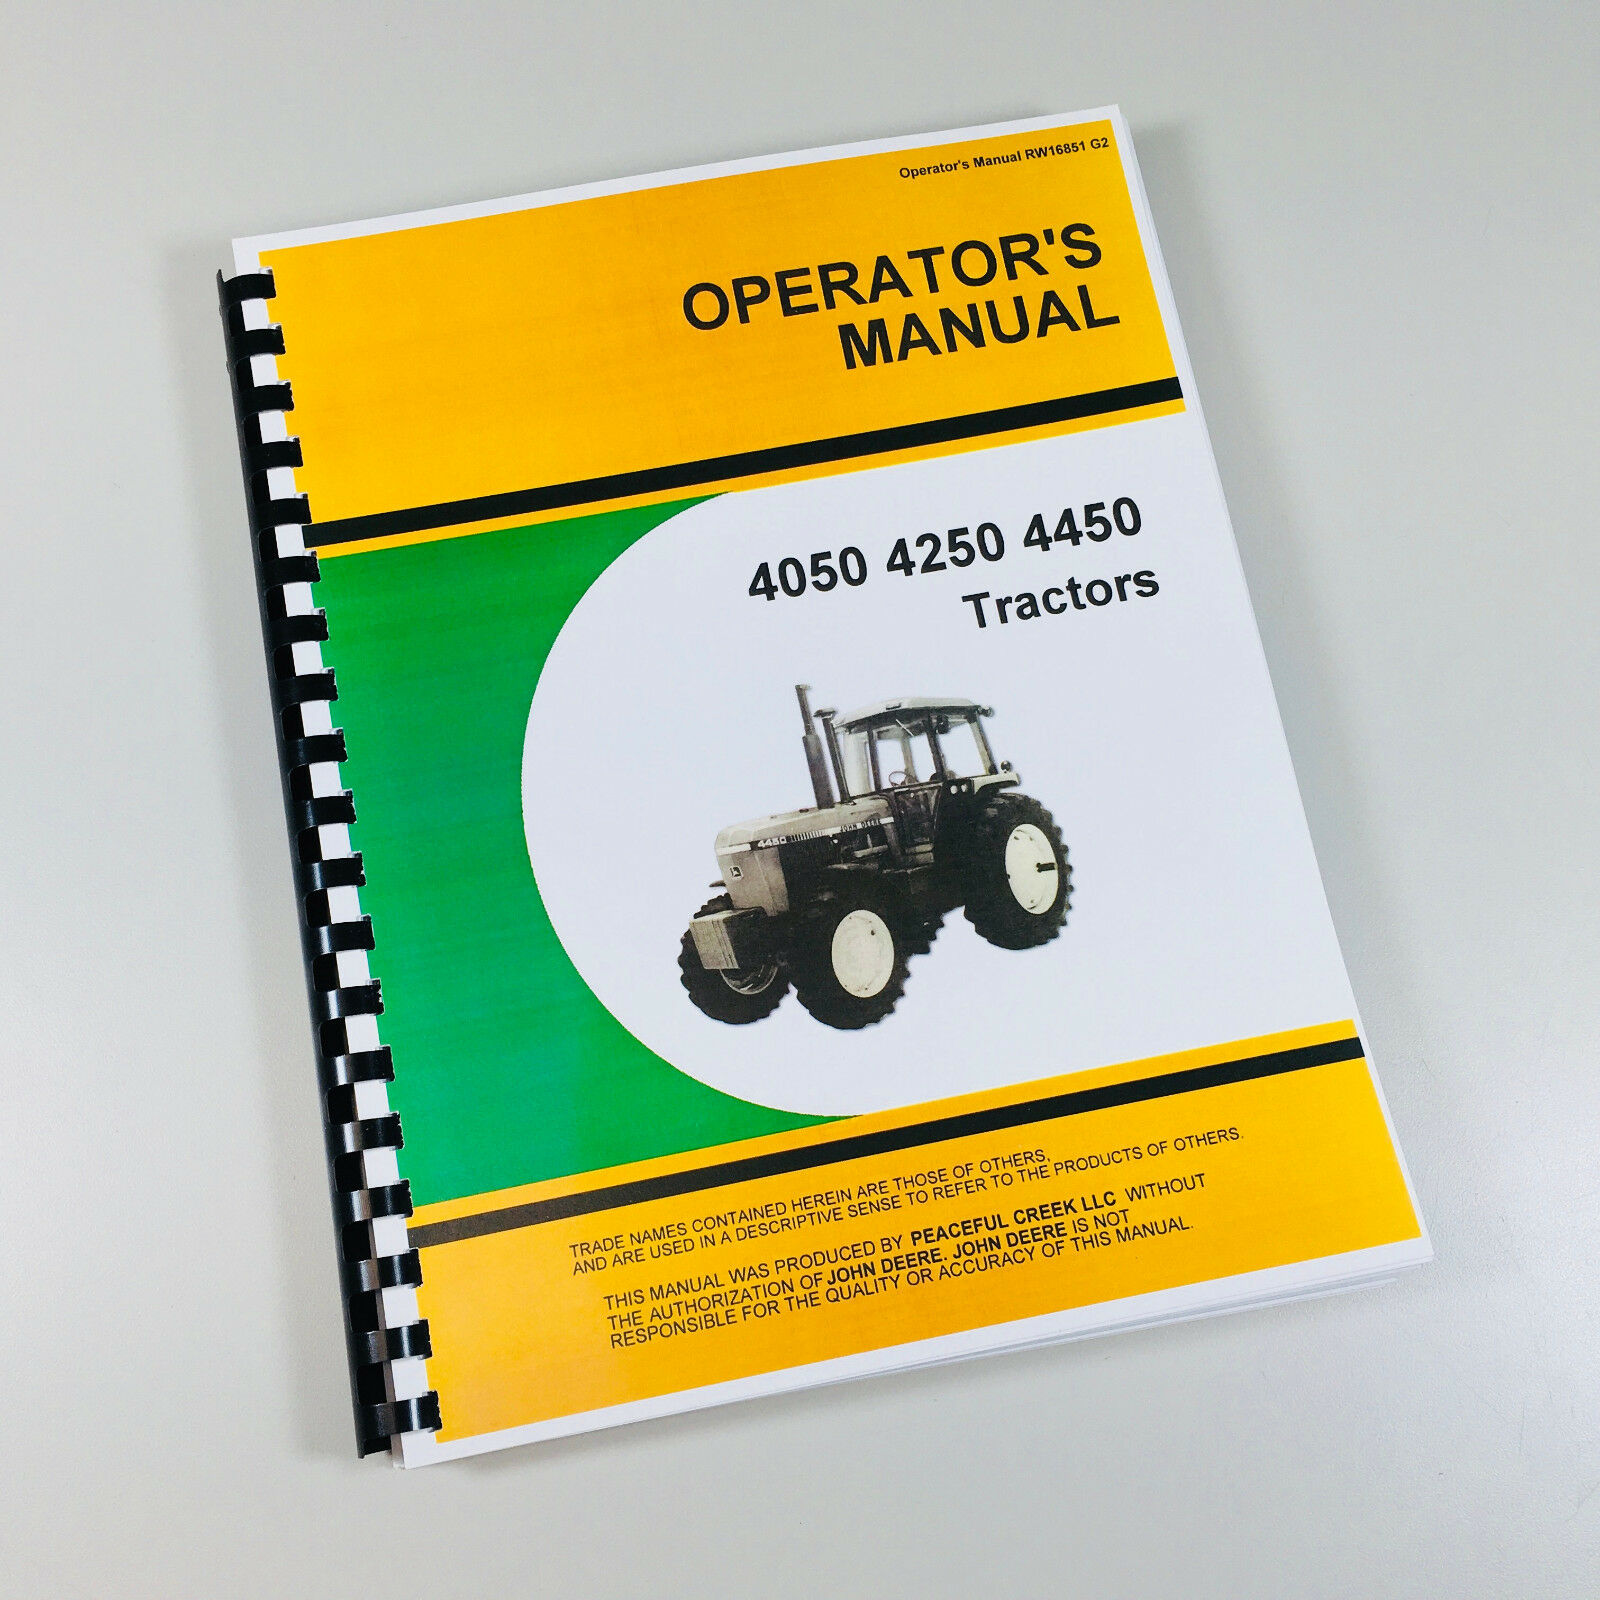 Complete Operators Manual Reproduction of the Factory Manual